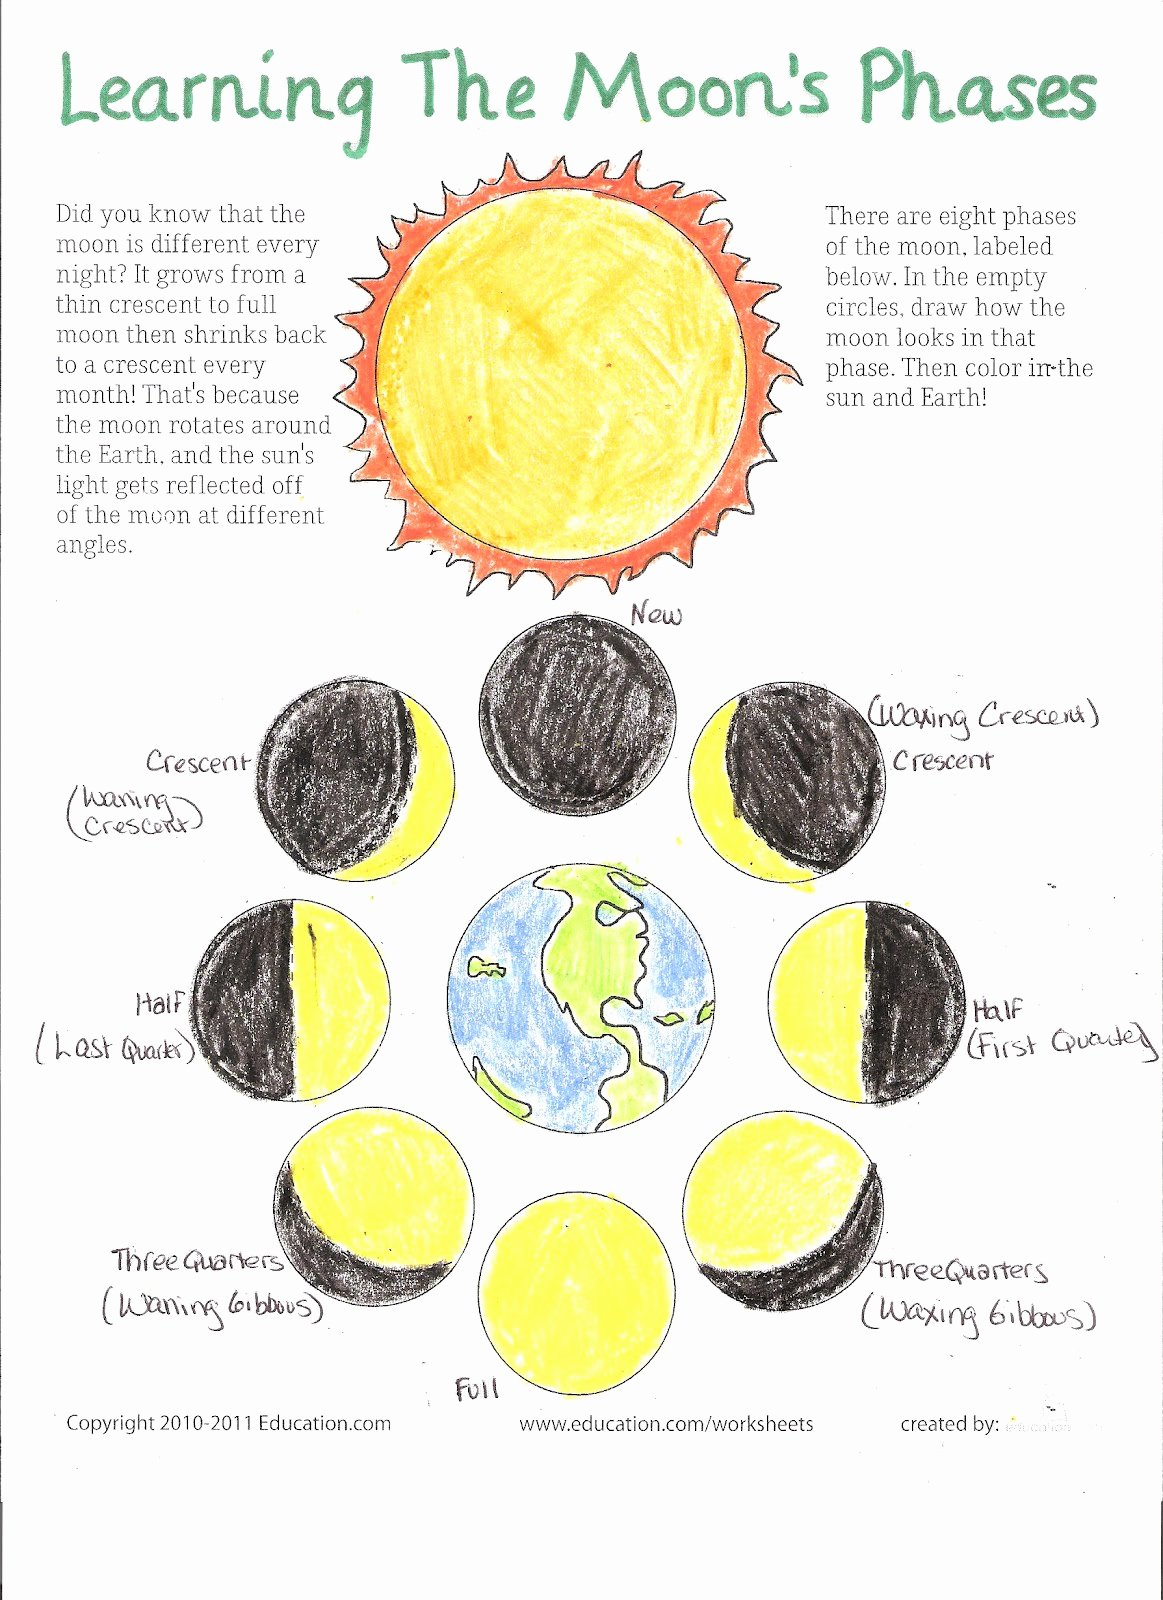 Phases Of the Moon Worksheet Printable Superval Blog Moon Phases Fun with the Kids